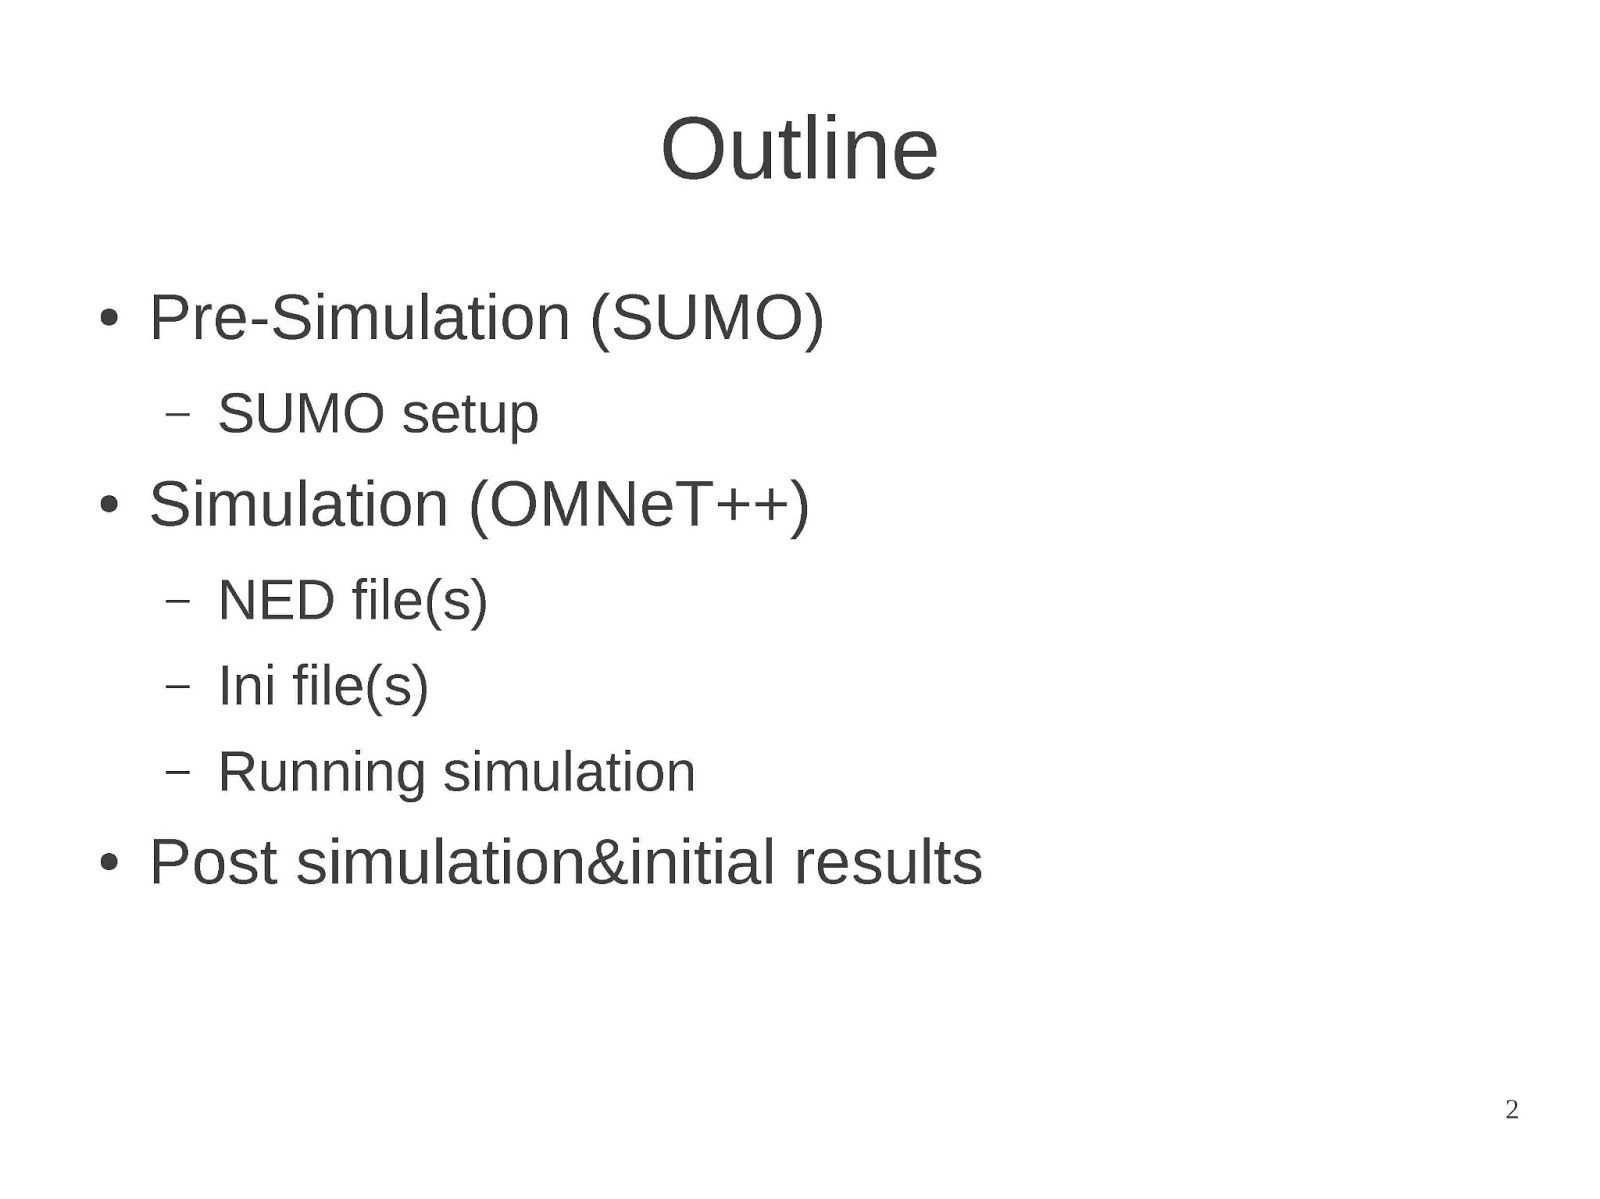 Vehicular Ad-Hoc Networks Simulation Using OMNeT++ and SUMO